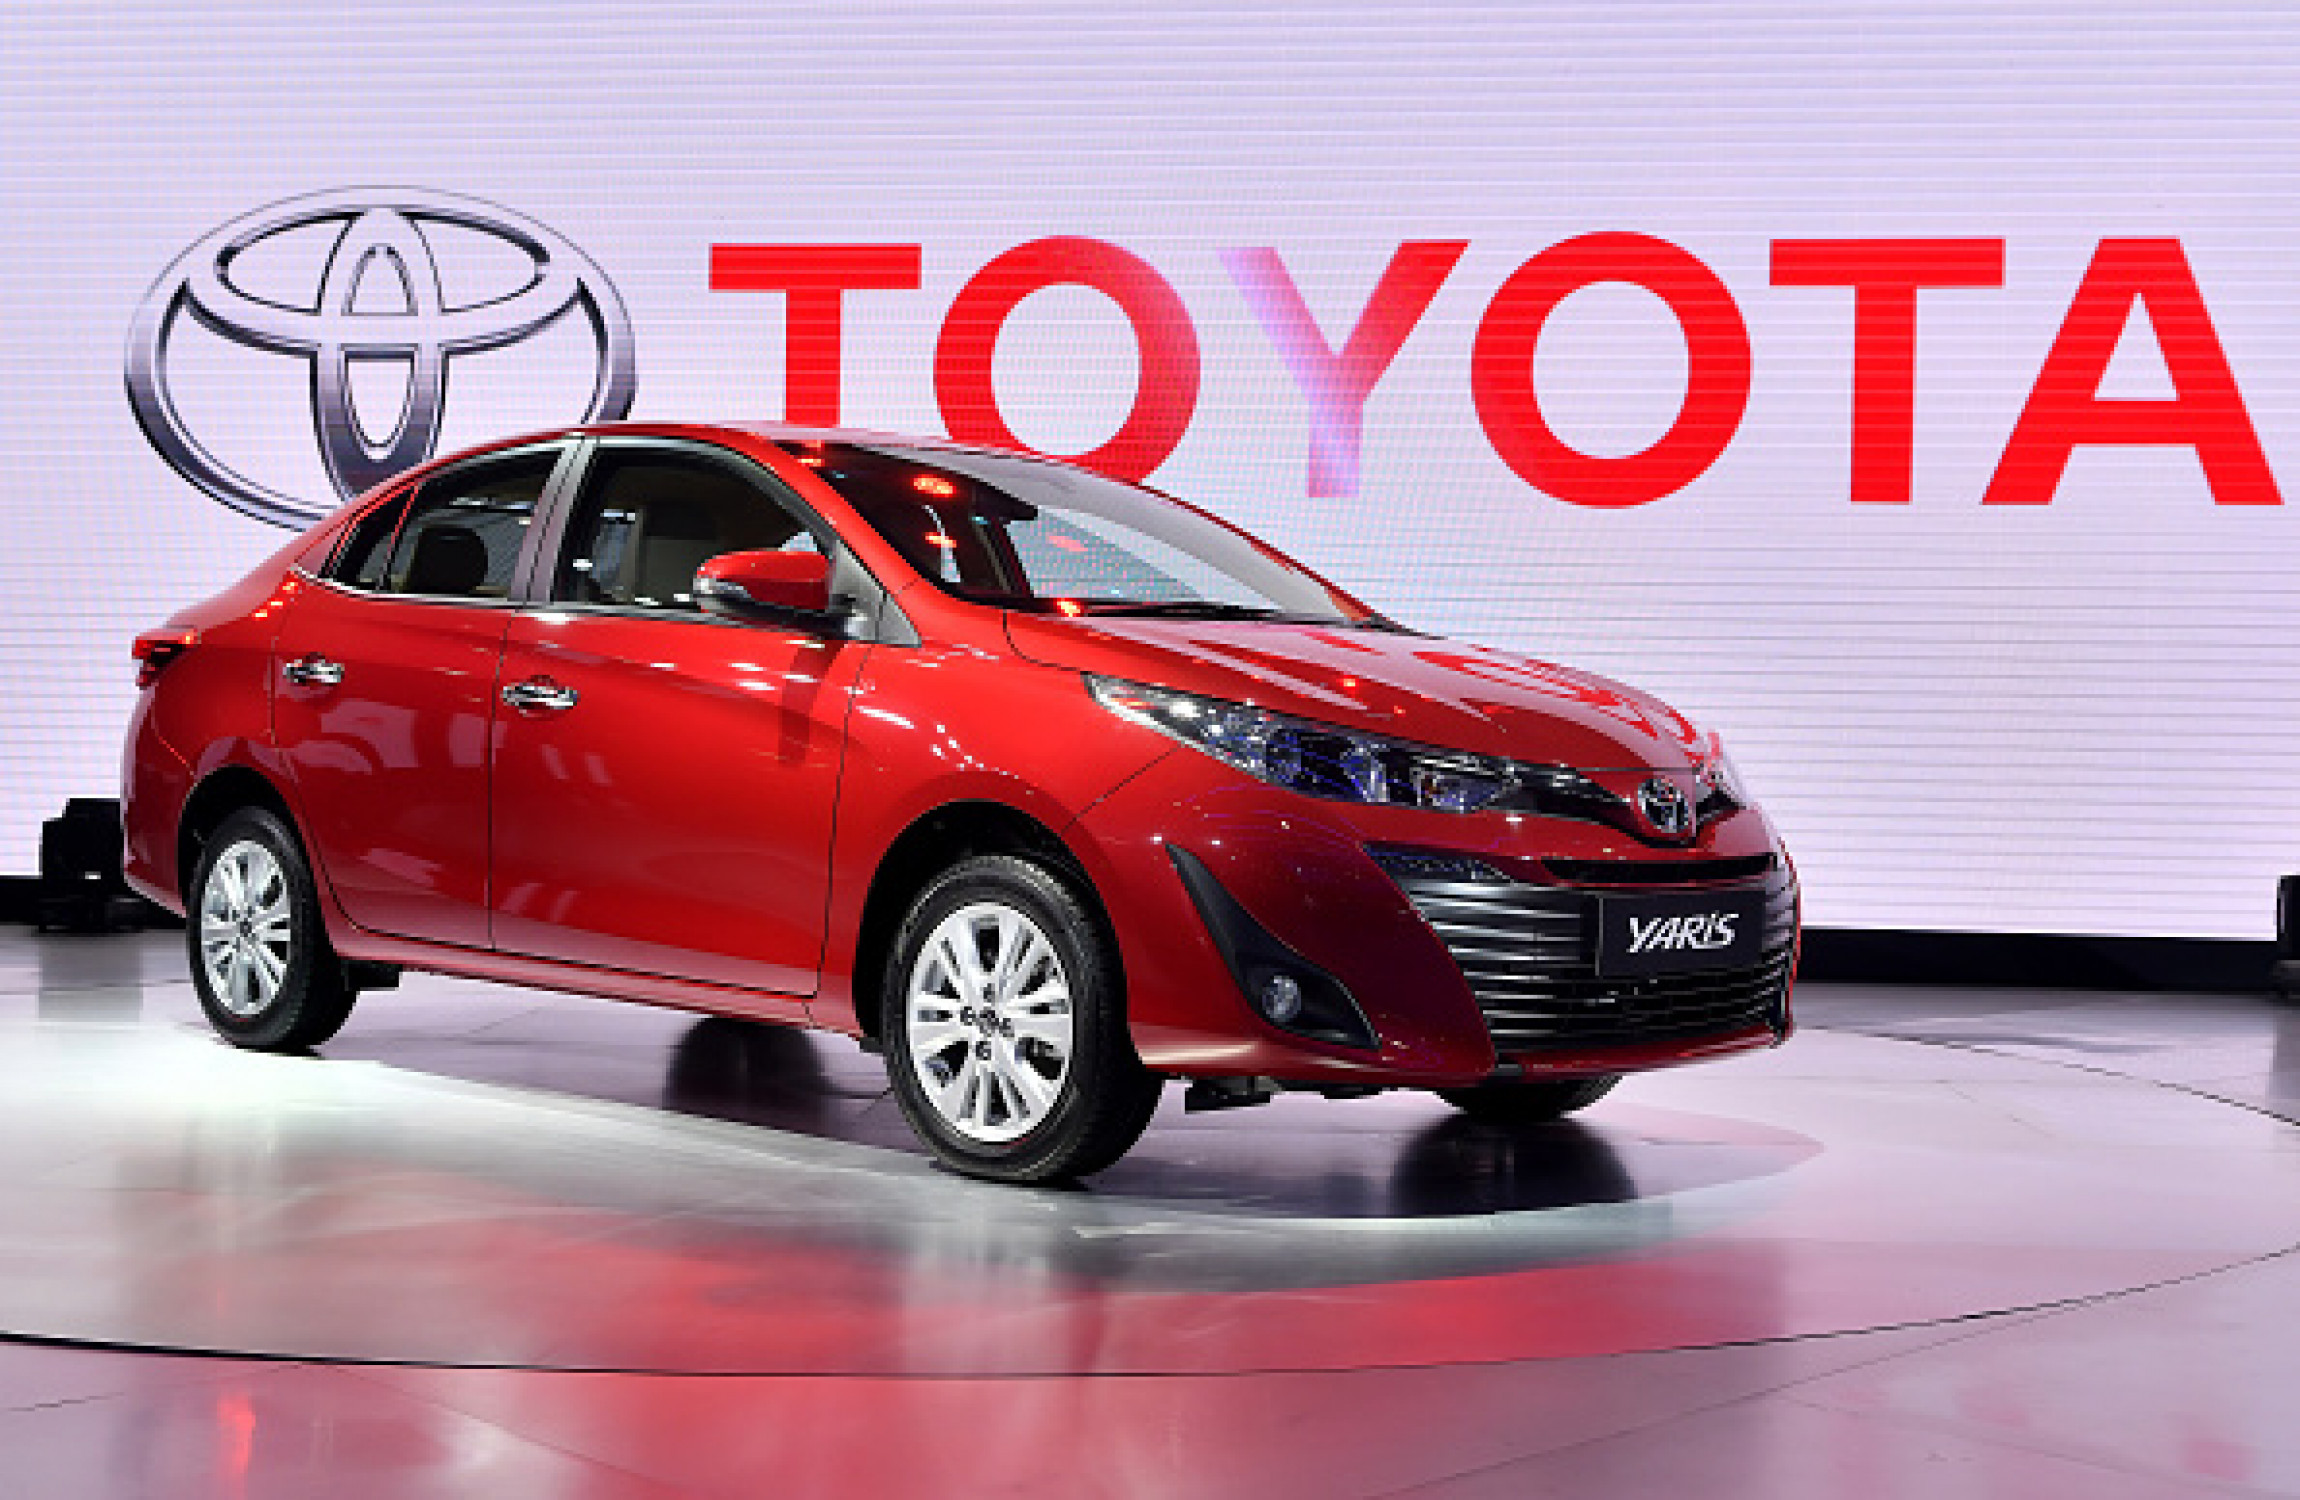 Toyota to cease all production of diesel cars this year